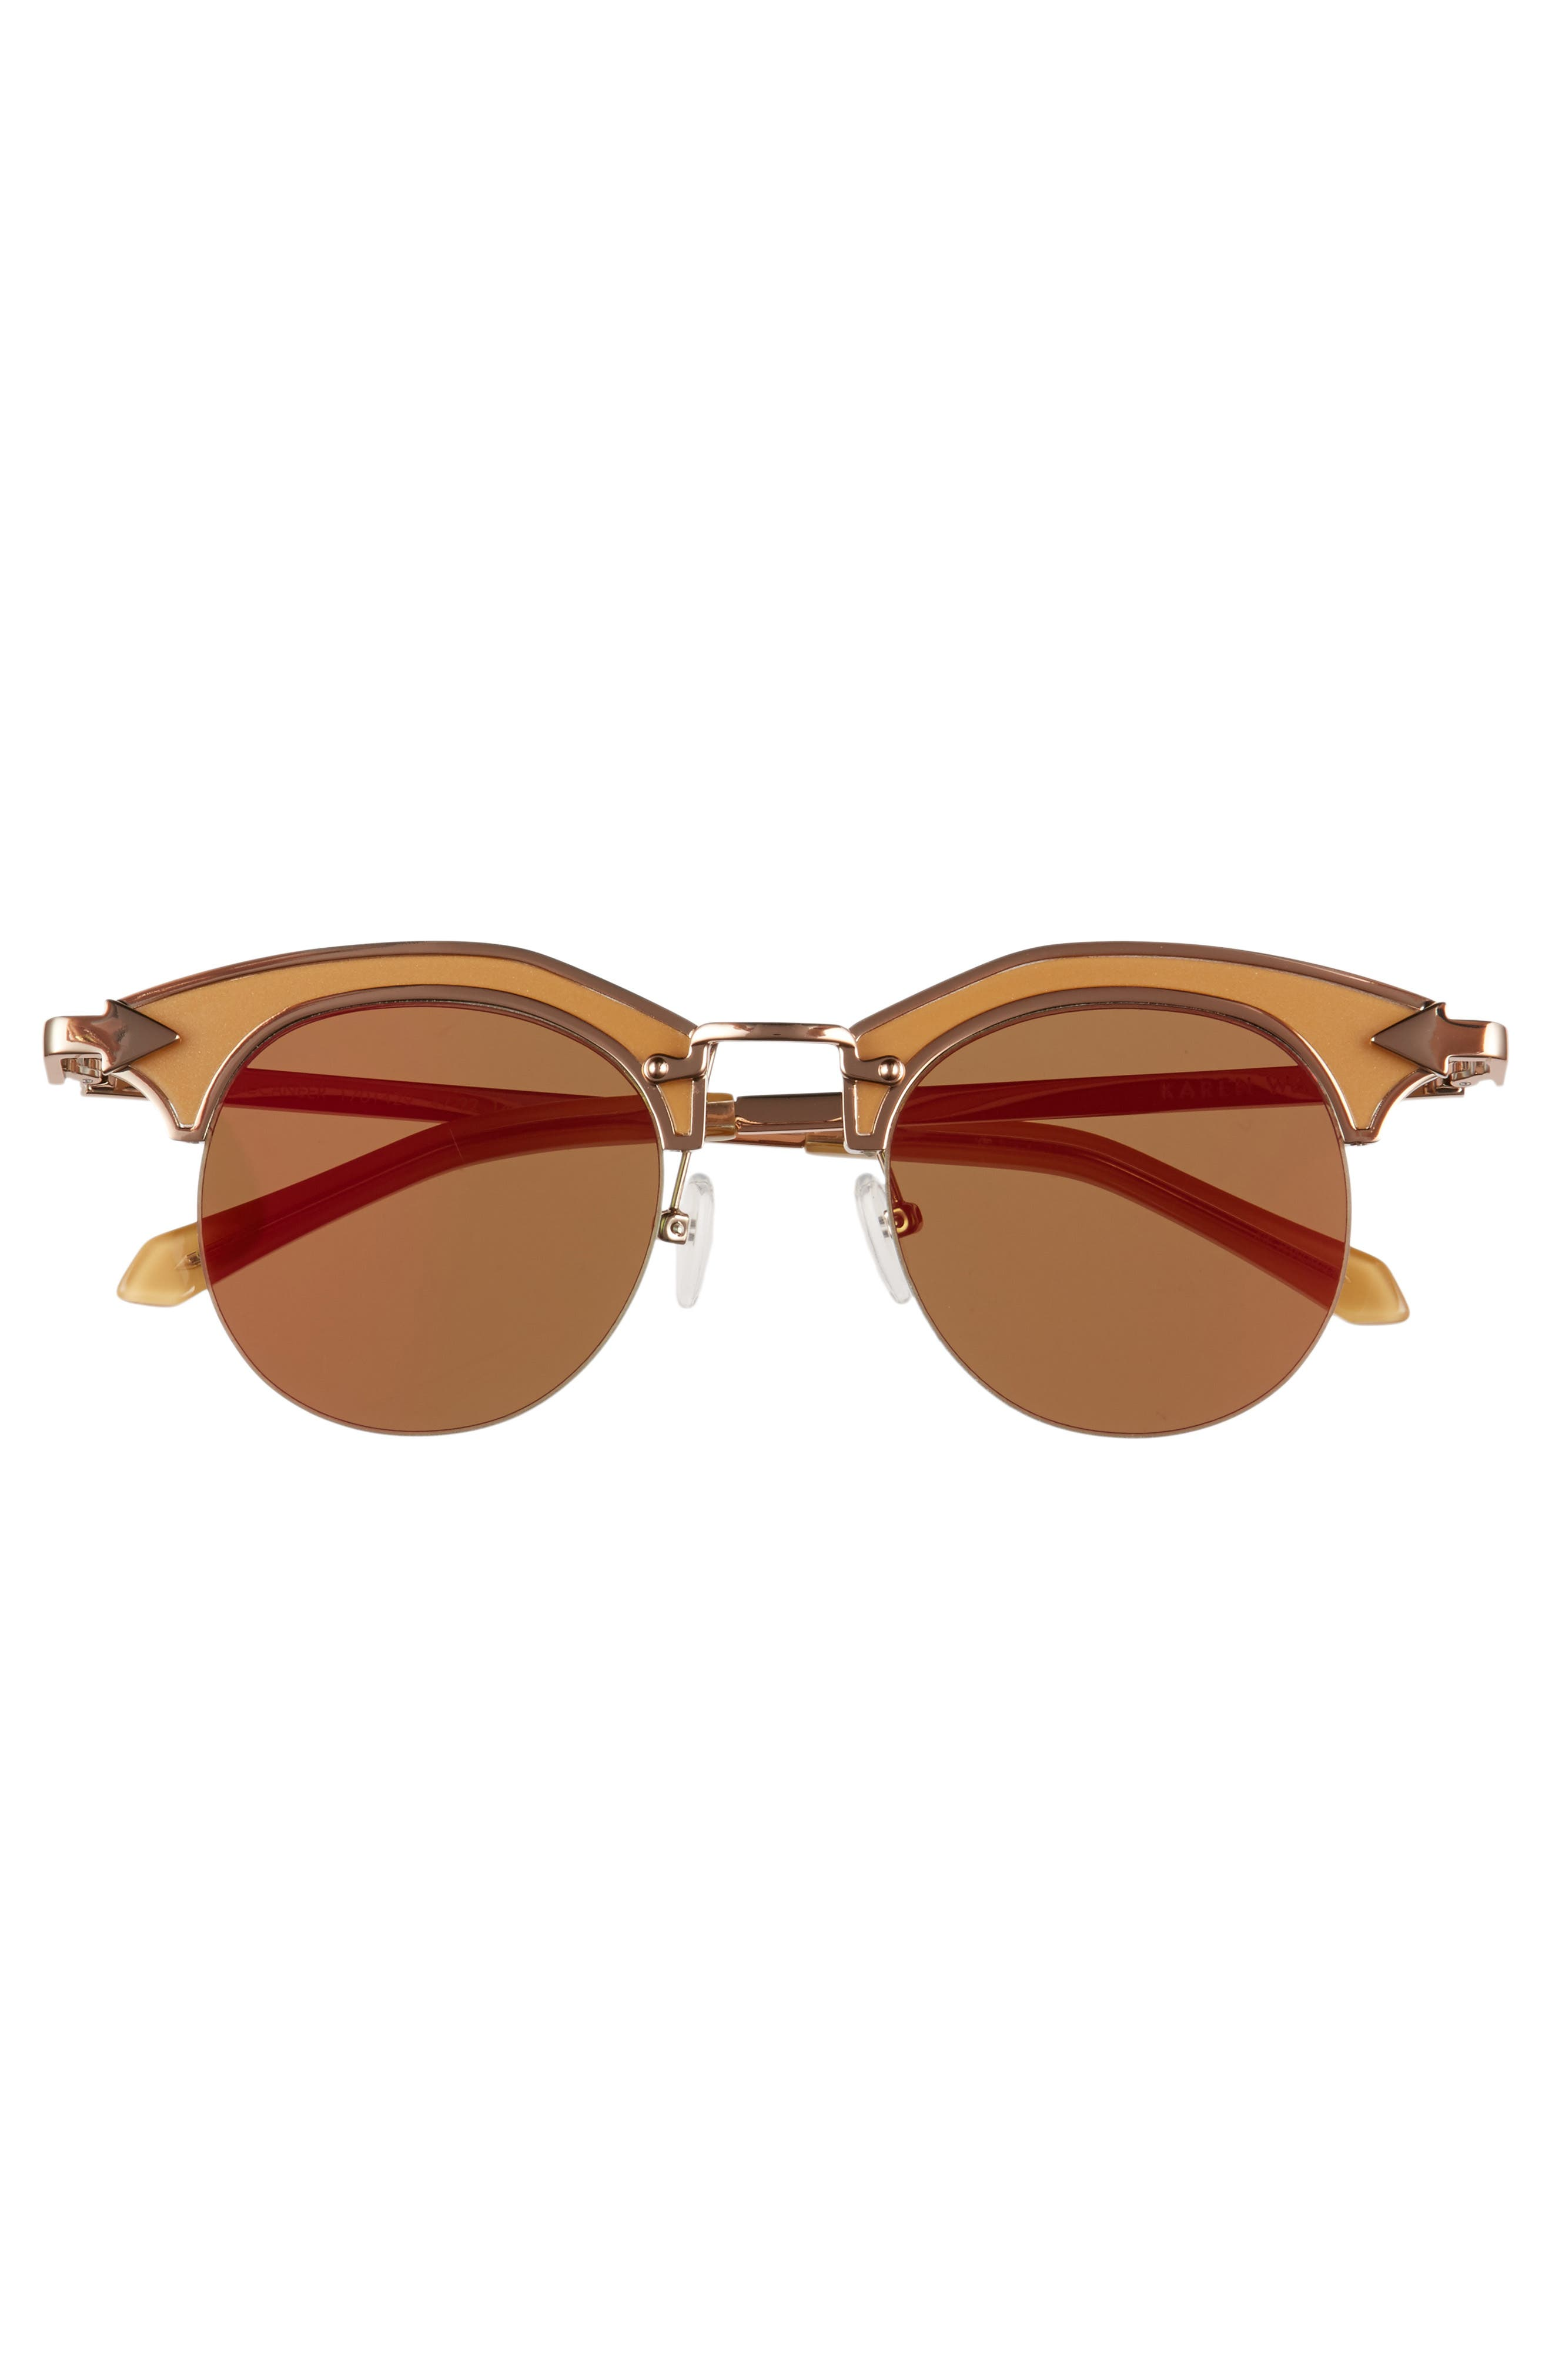 Buccaneer 47mm Round Sunglasses,                             Alternate thumbnail 3, color,                             Tan